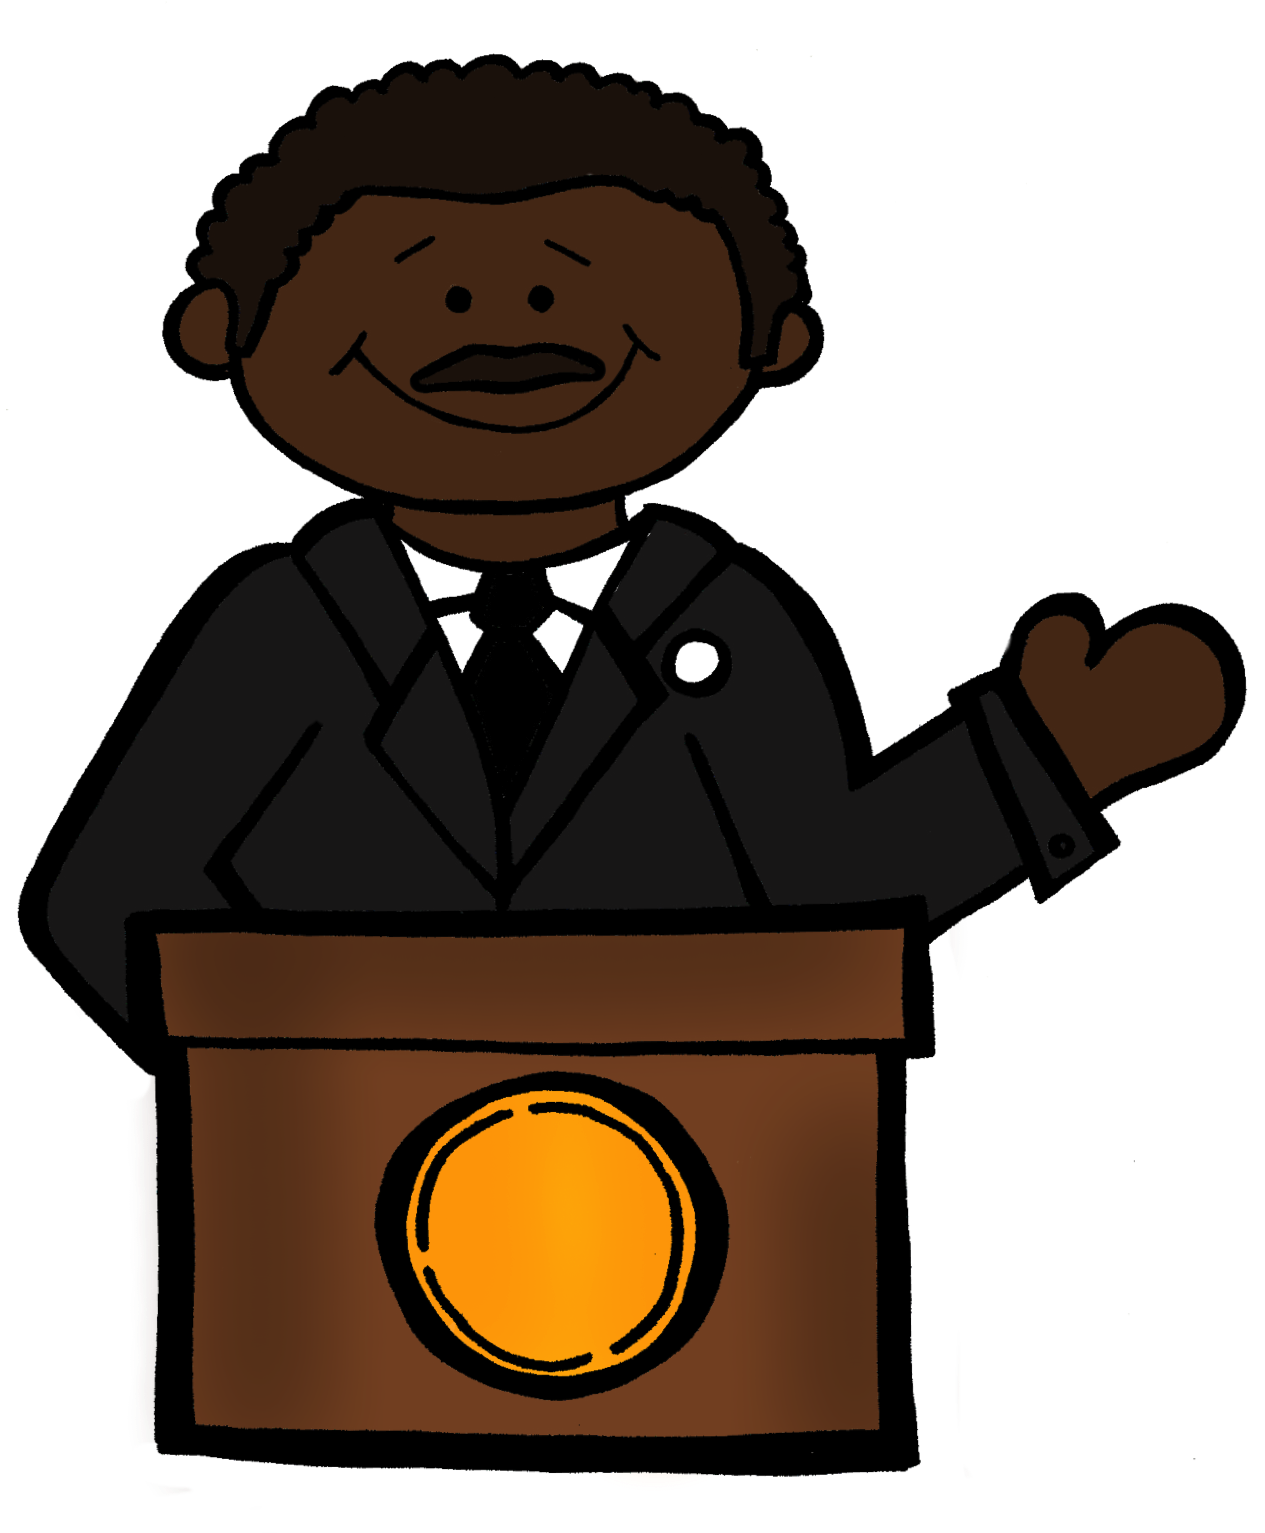 Clipart happy martin luther king day, Picture #550790.